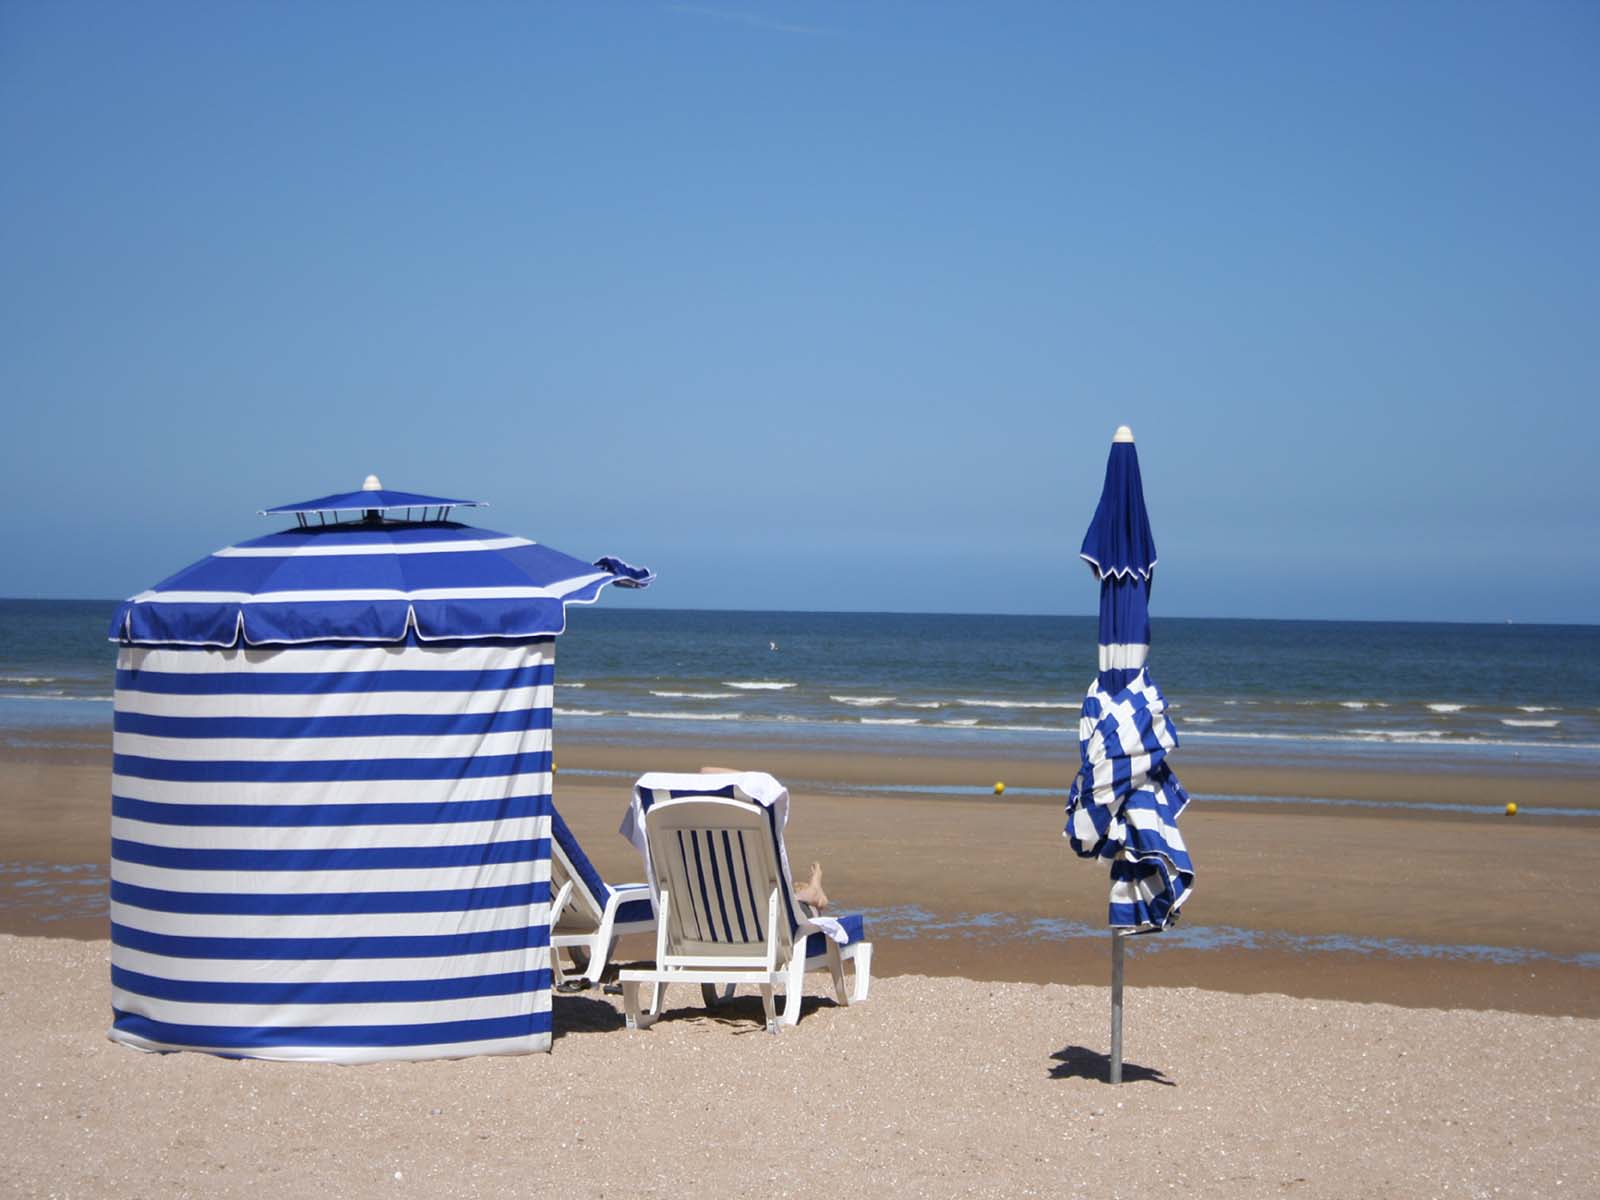 Free sea wallpapers north of france normandy for Fond ecran plage gratuit